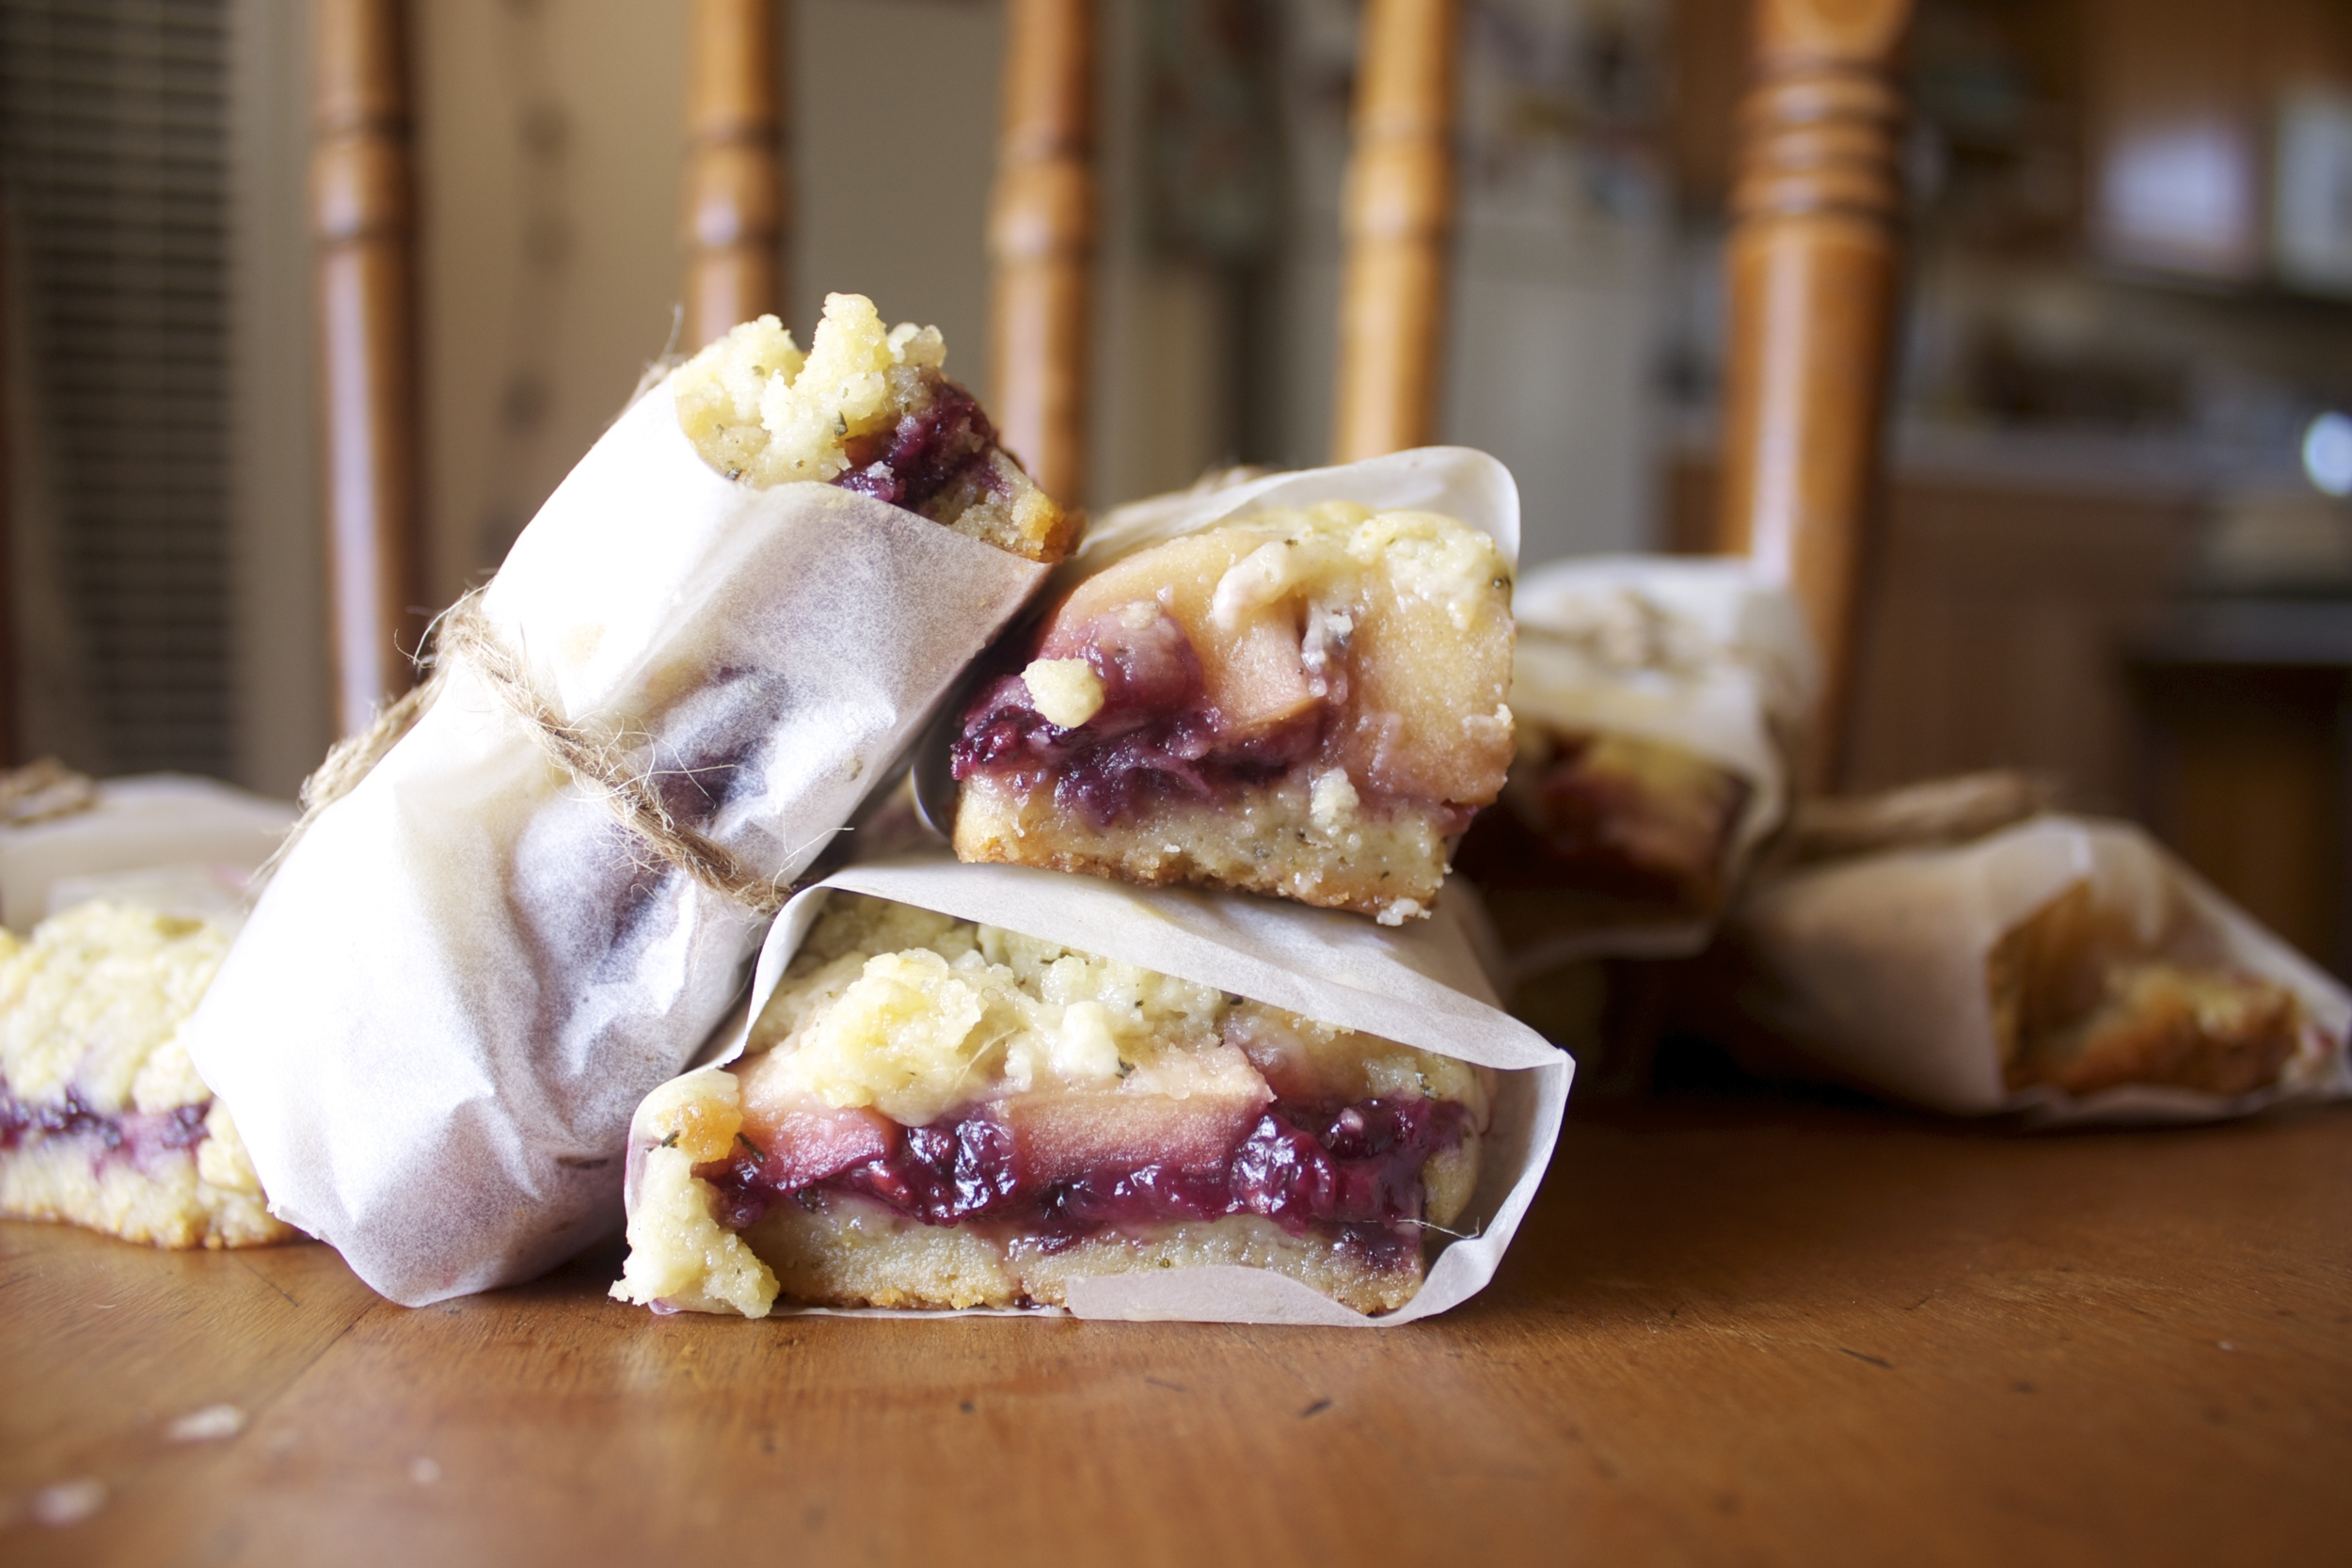 BLACKBERRY JAM AND APPLE FILLED ROSEMARY-SHORTBREAD BARS